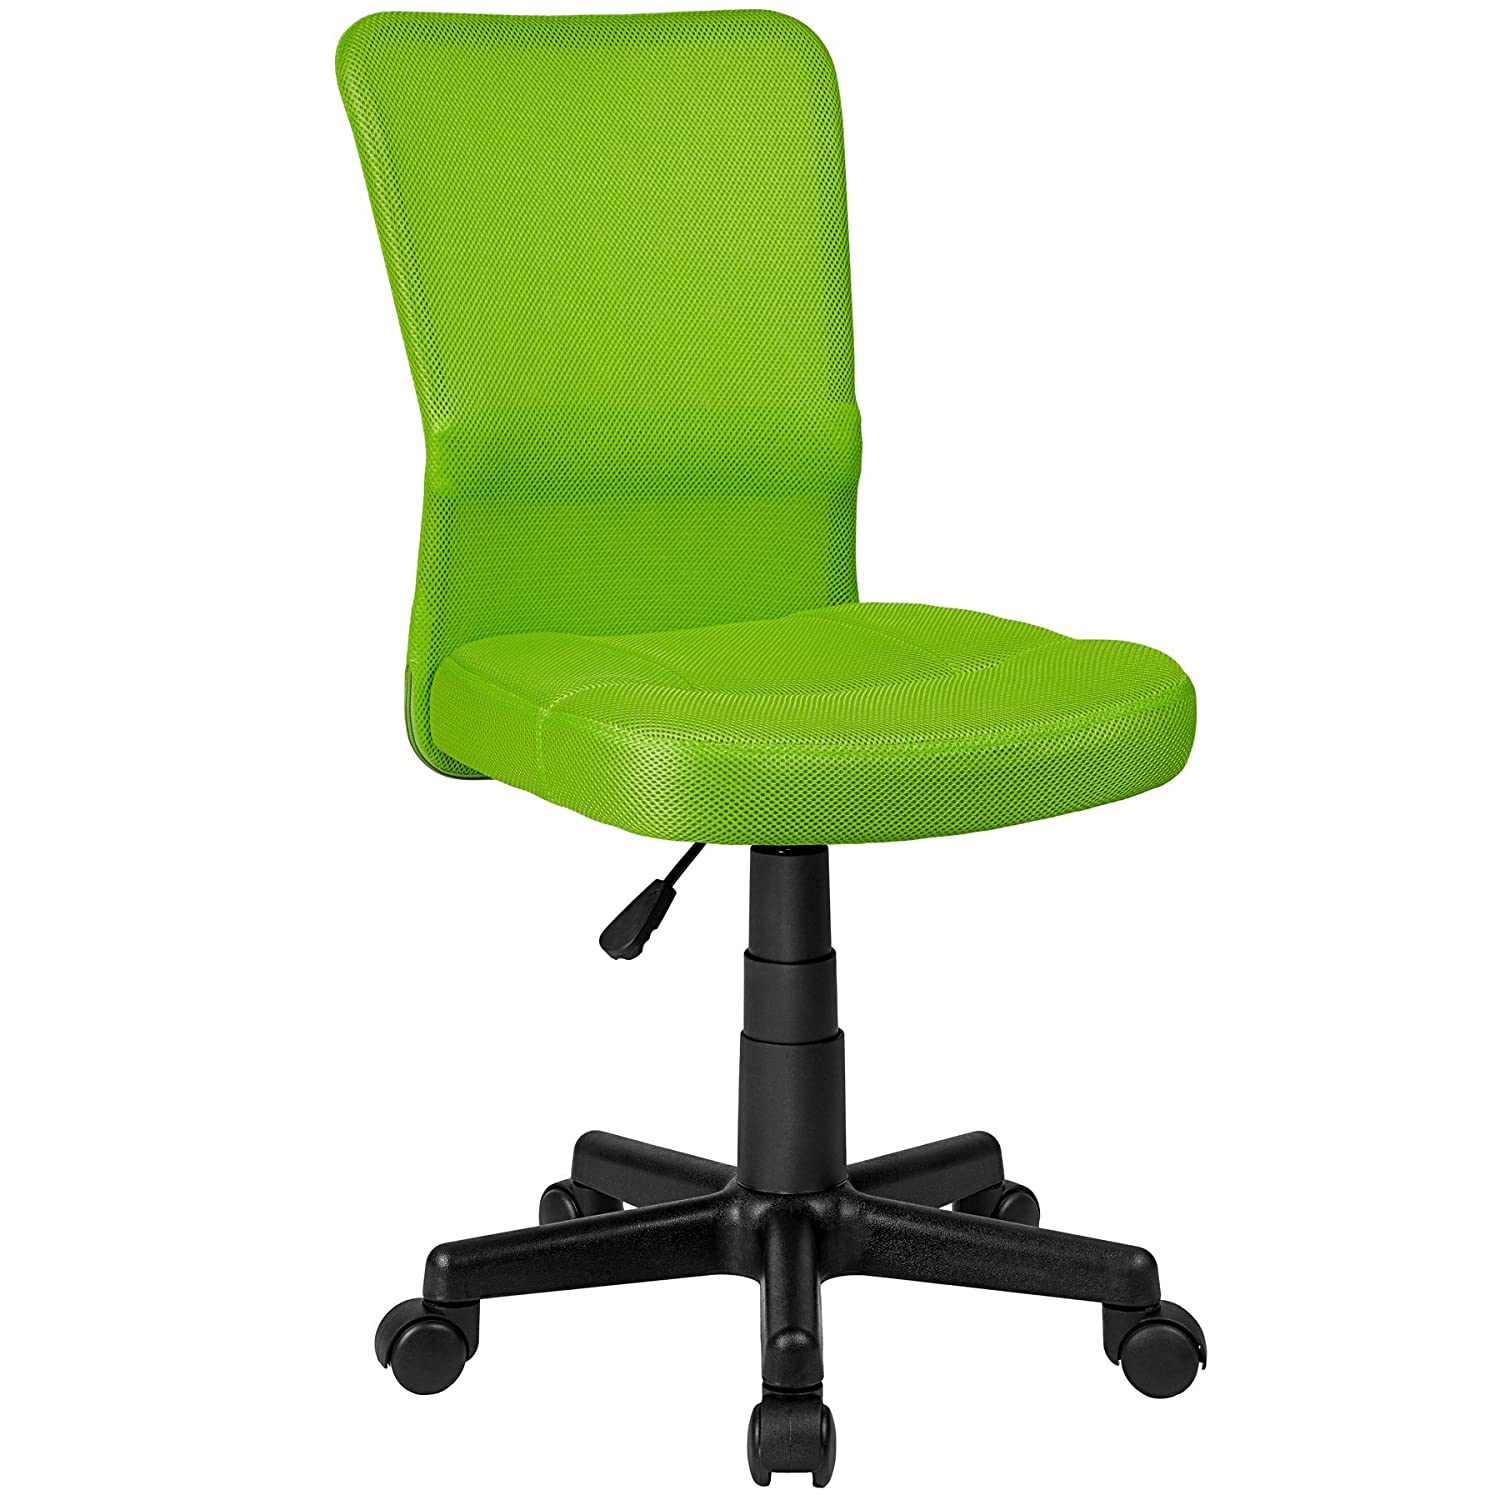 tectake office computer chair green amazon co uk kitchen home